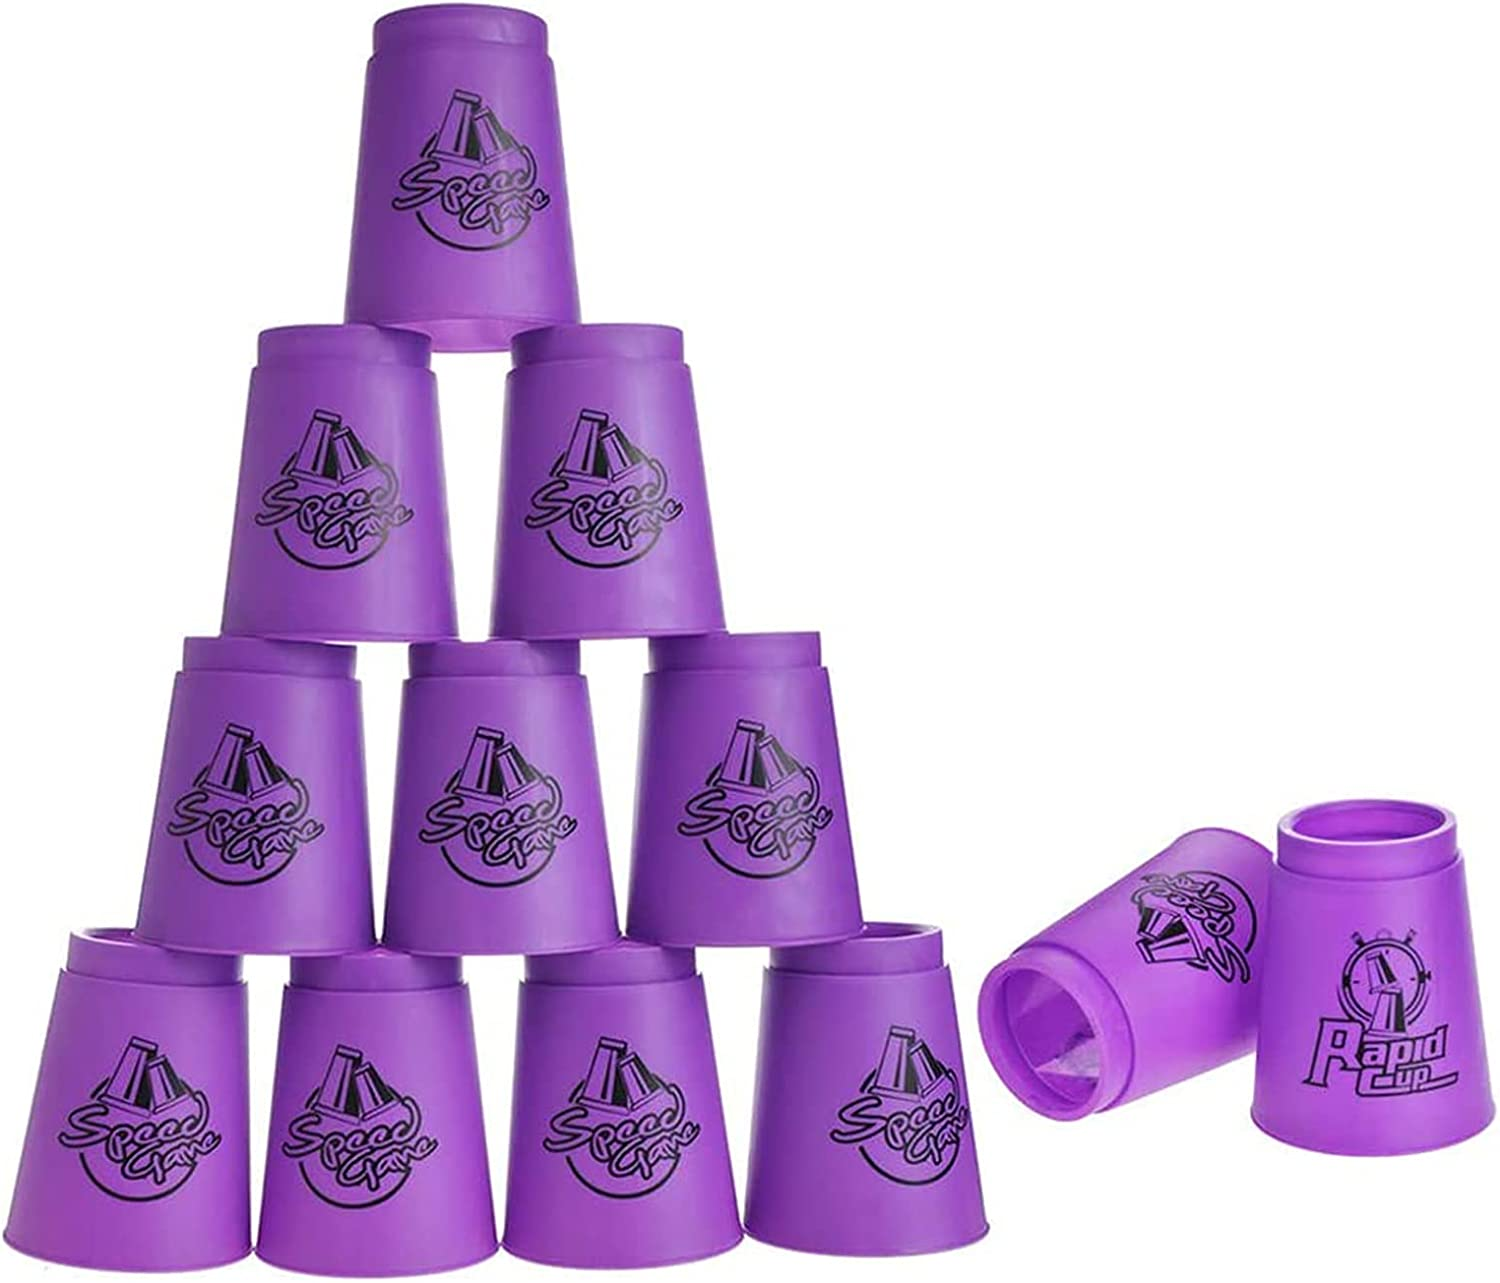 Upgrade Max 62% OFF Quick Stacks Cups 12 Cheap super special price Stacking Sports Speed PC of